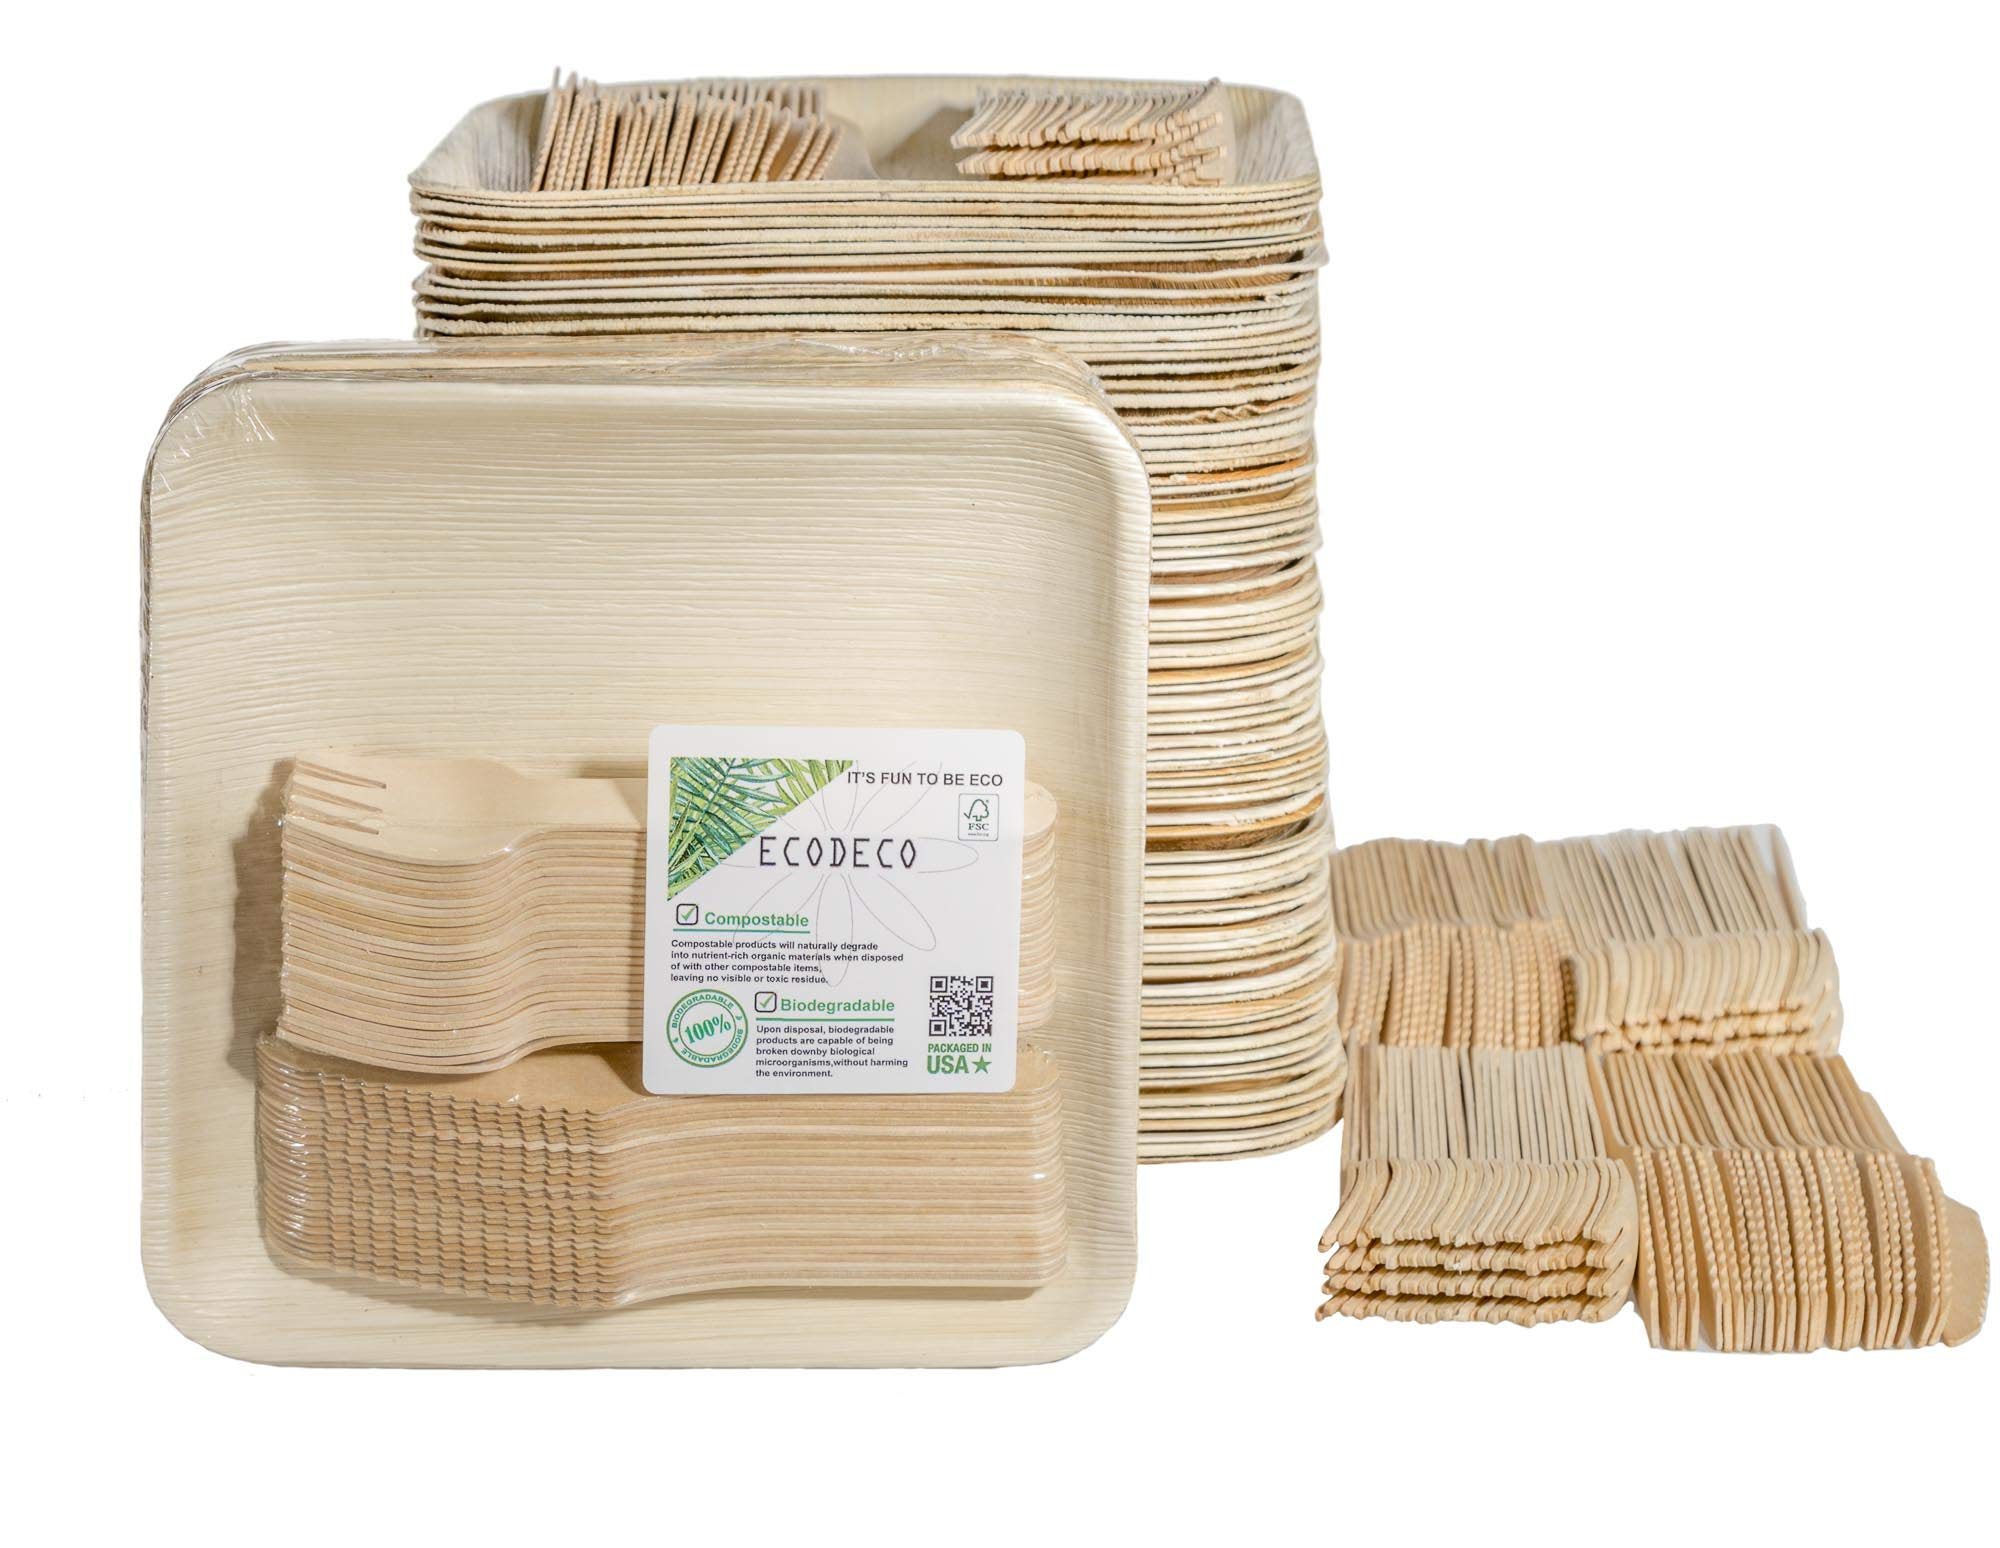 300 PCS Eco Friendly Disposable Dinnerware Set - 100 Palm Leaf Compostable 8'' Plates w/Wooden Cutlery - 100 Forks 100 Knives for Party